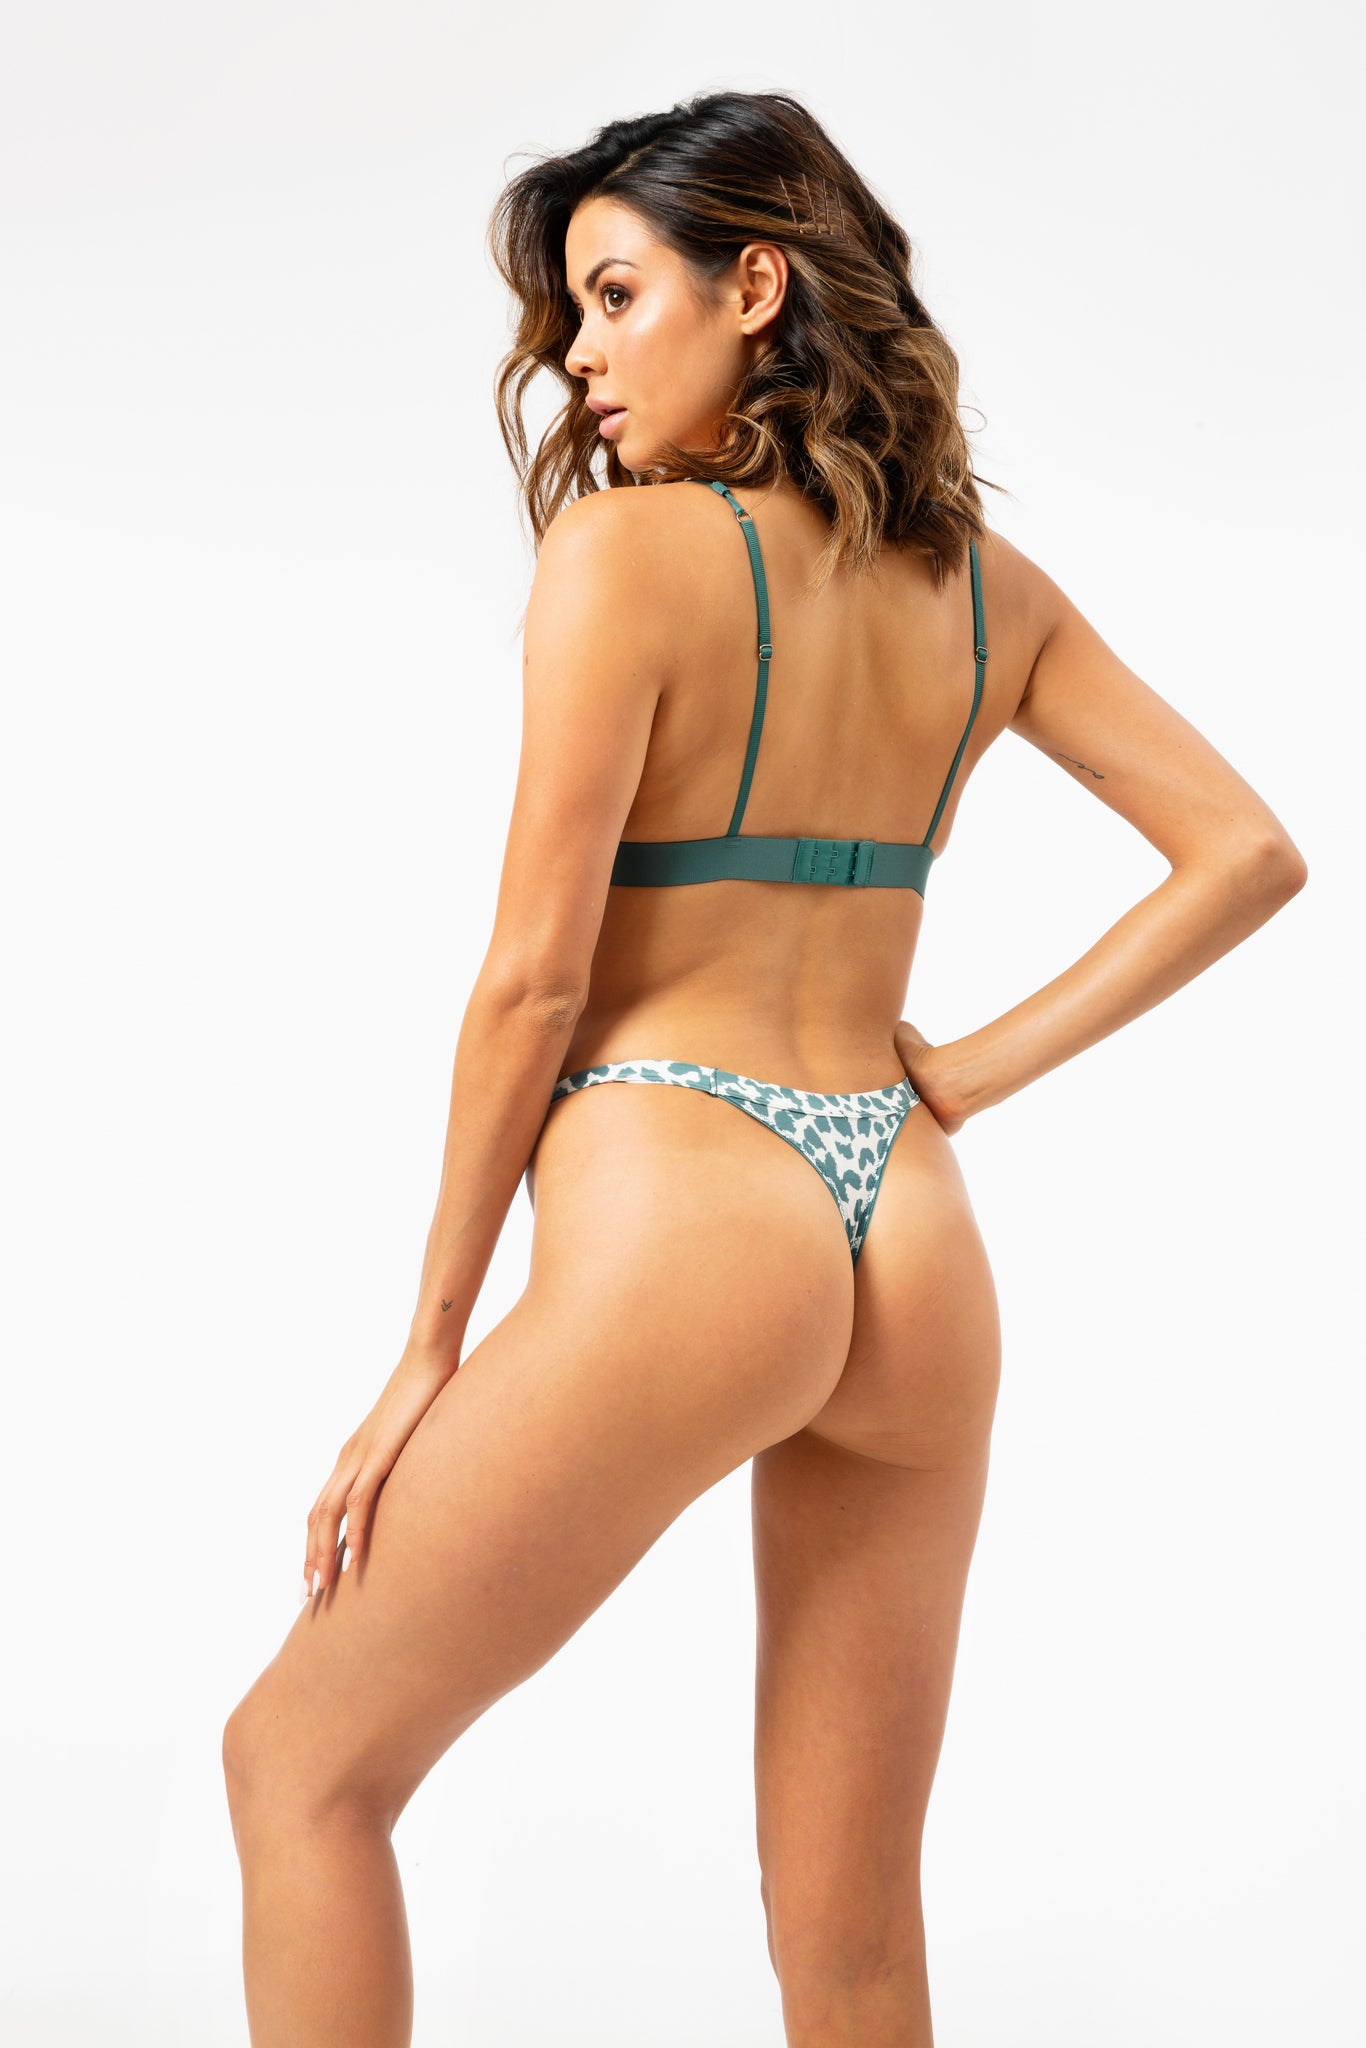 ALL THE FEELS: Roomservice Briefs in Leopard Mallard Green - LOVE STORIES